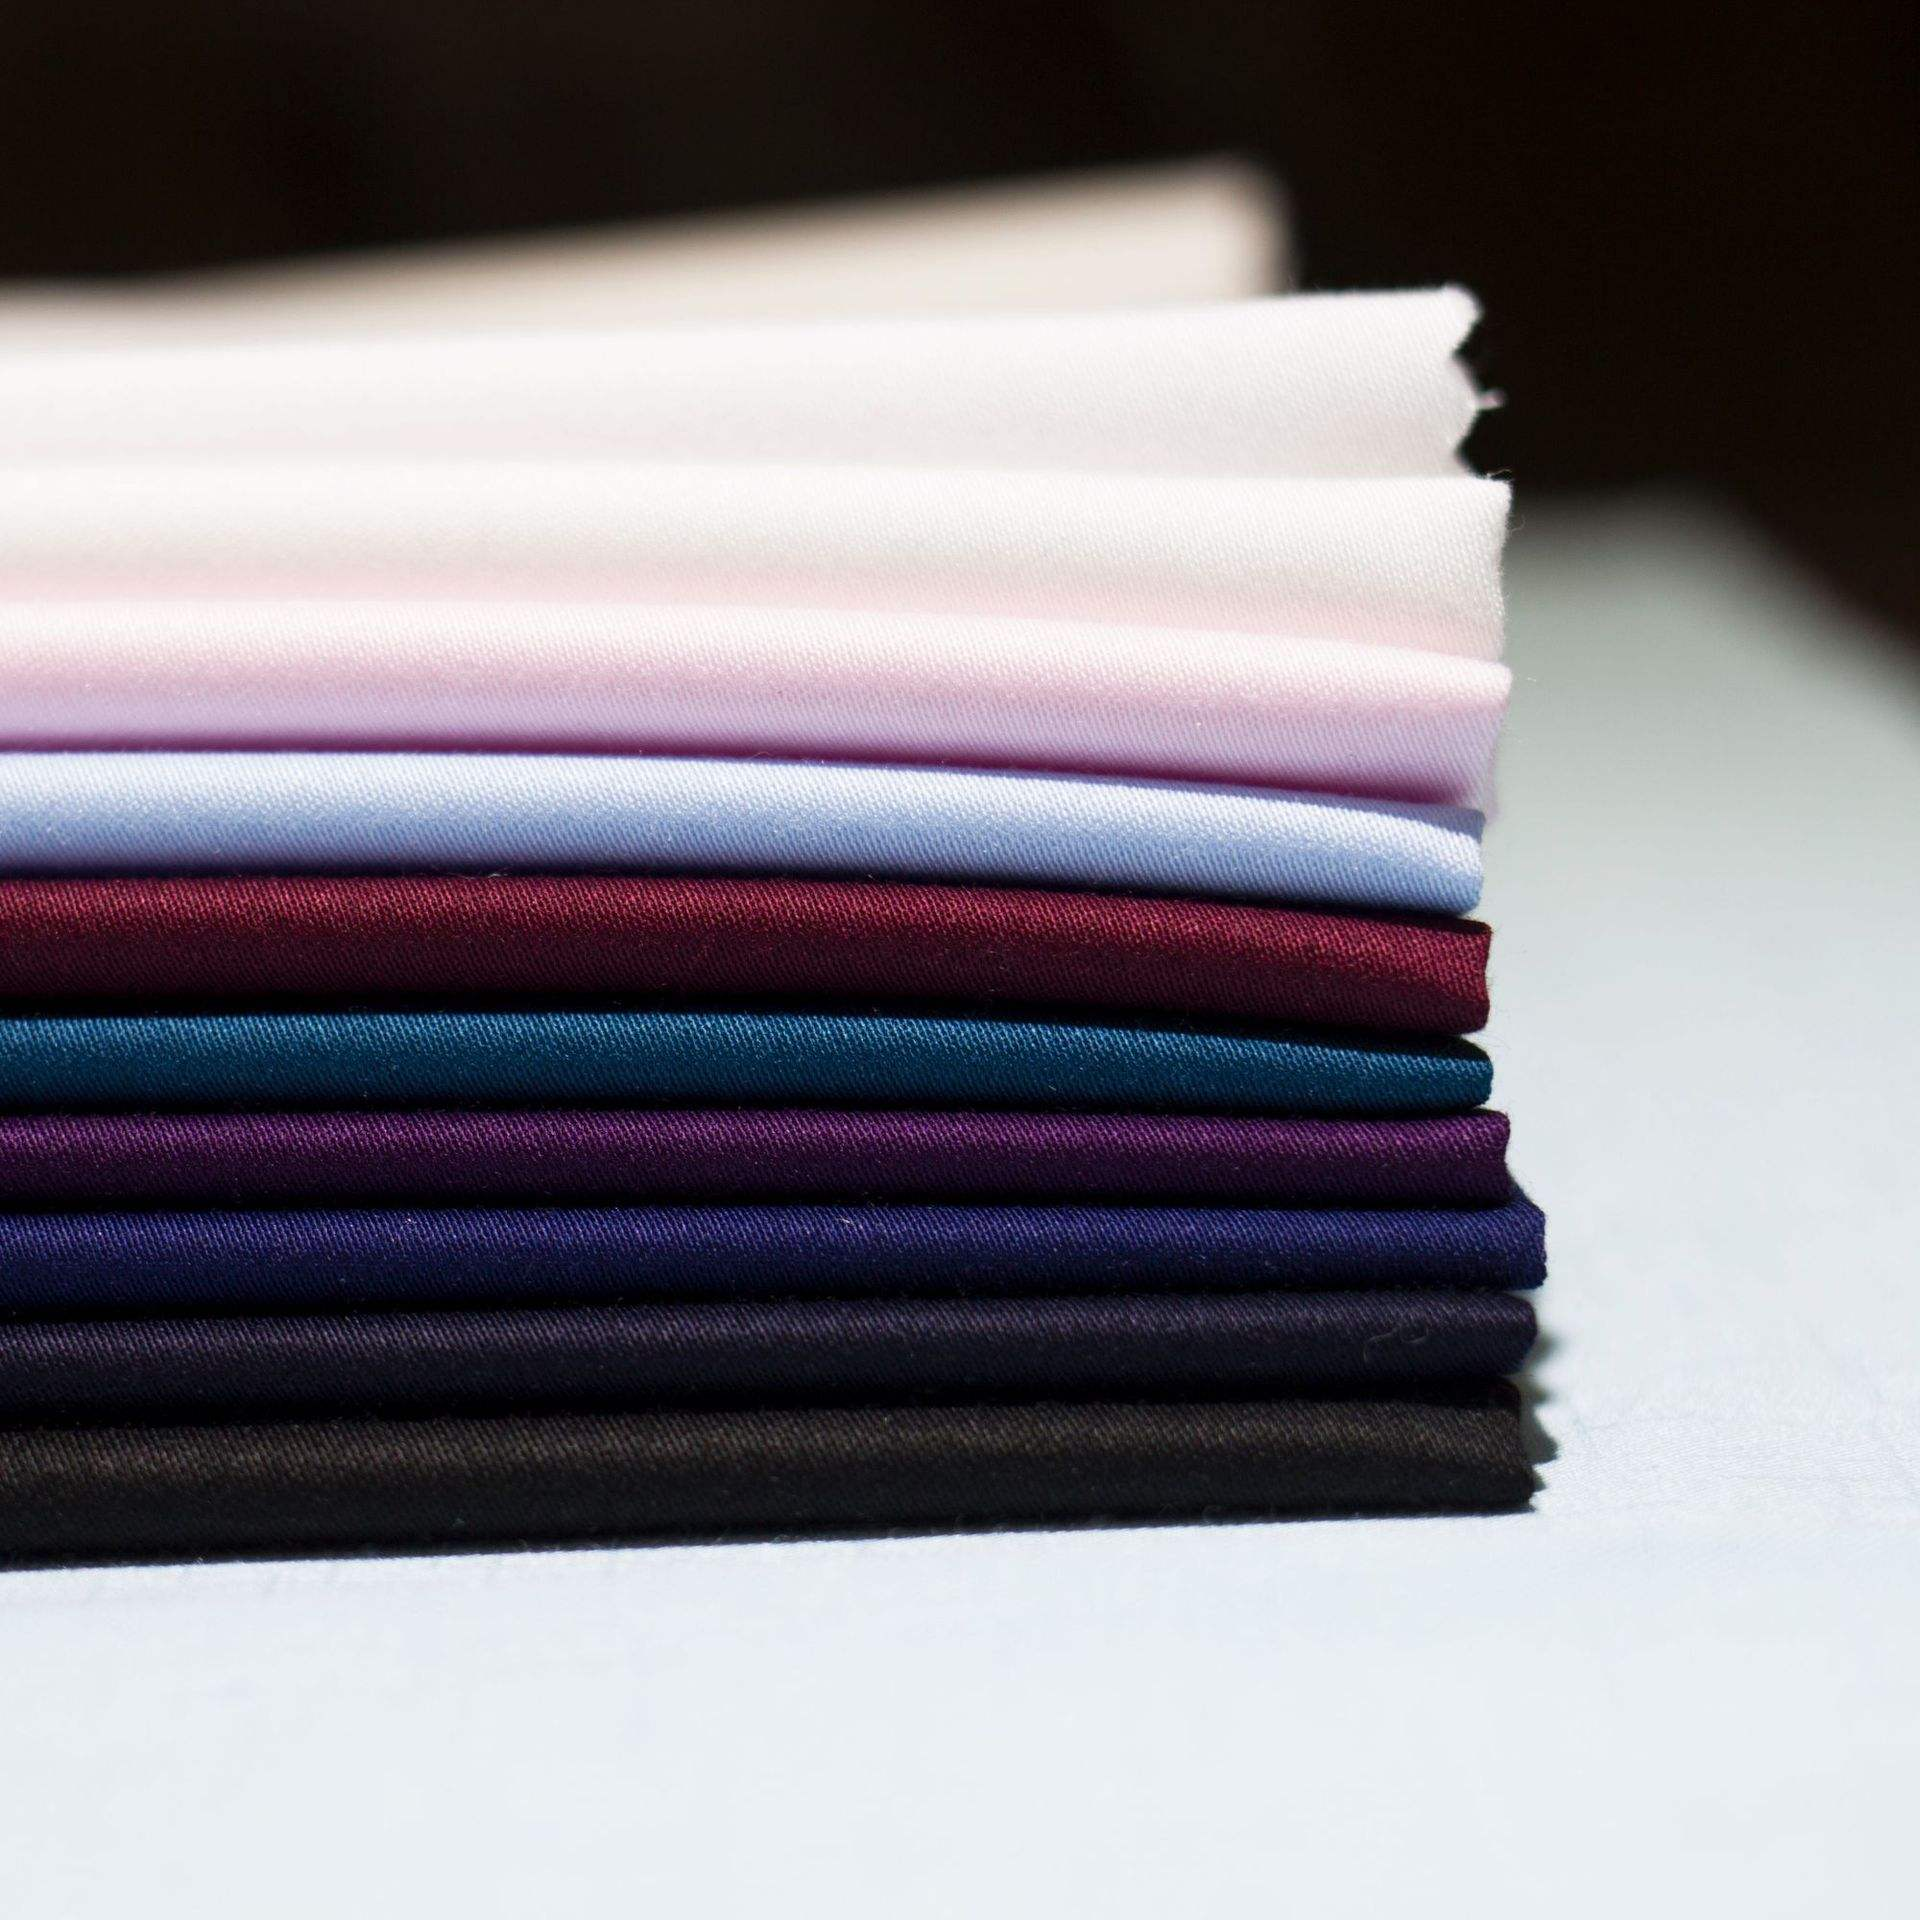 shirt fabric 49%bamboo fiber 49%Polyester 2%spandex satin weave shirt cloth woven Fabric